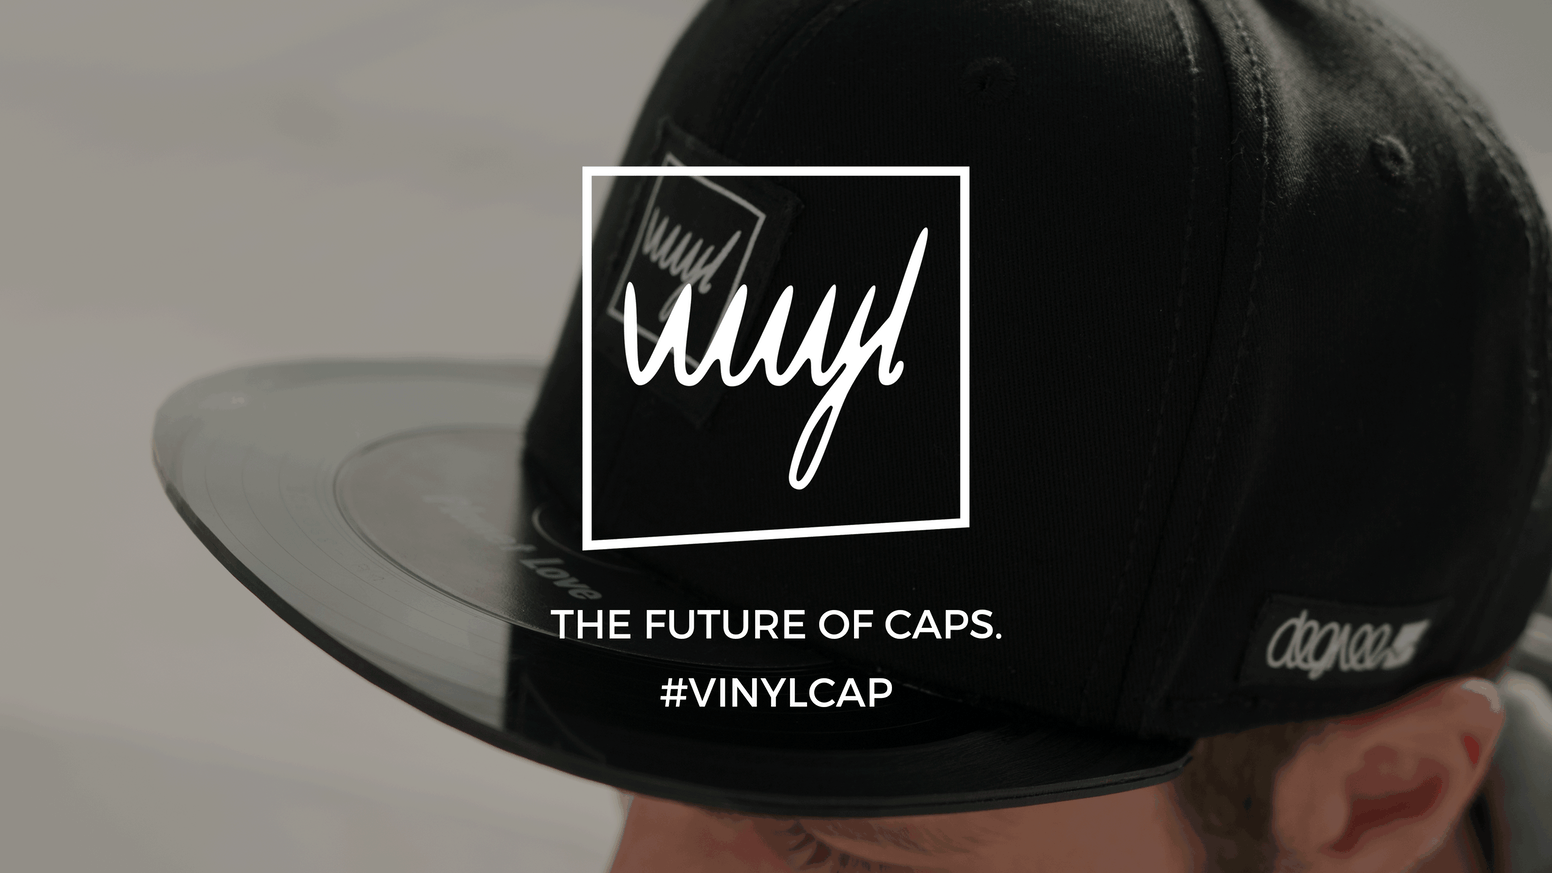 You love the sound of vinyl? Now you have the chance to wear them. The world´s first patented #vinylcap is the future of caps!